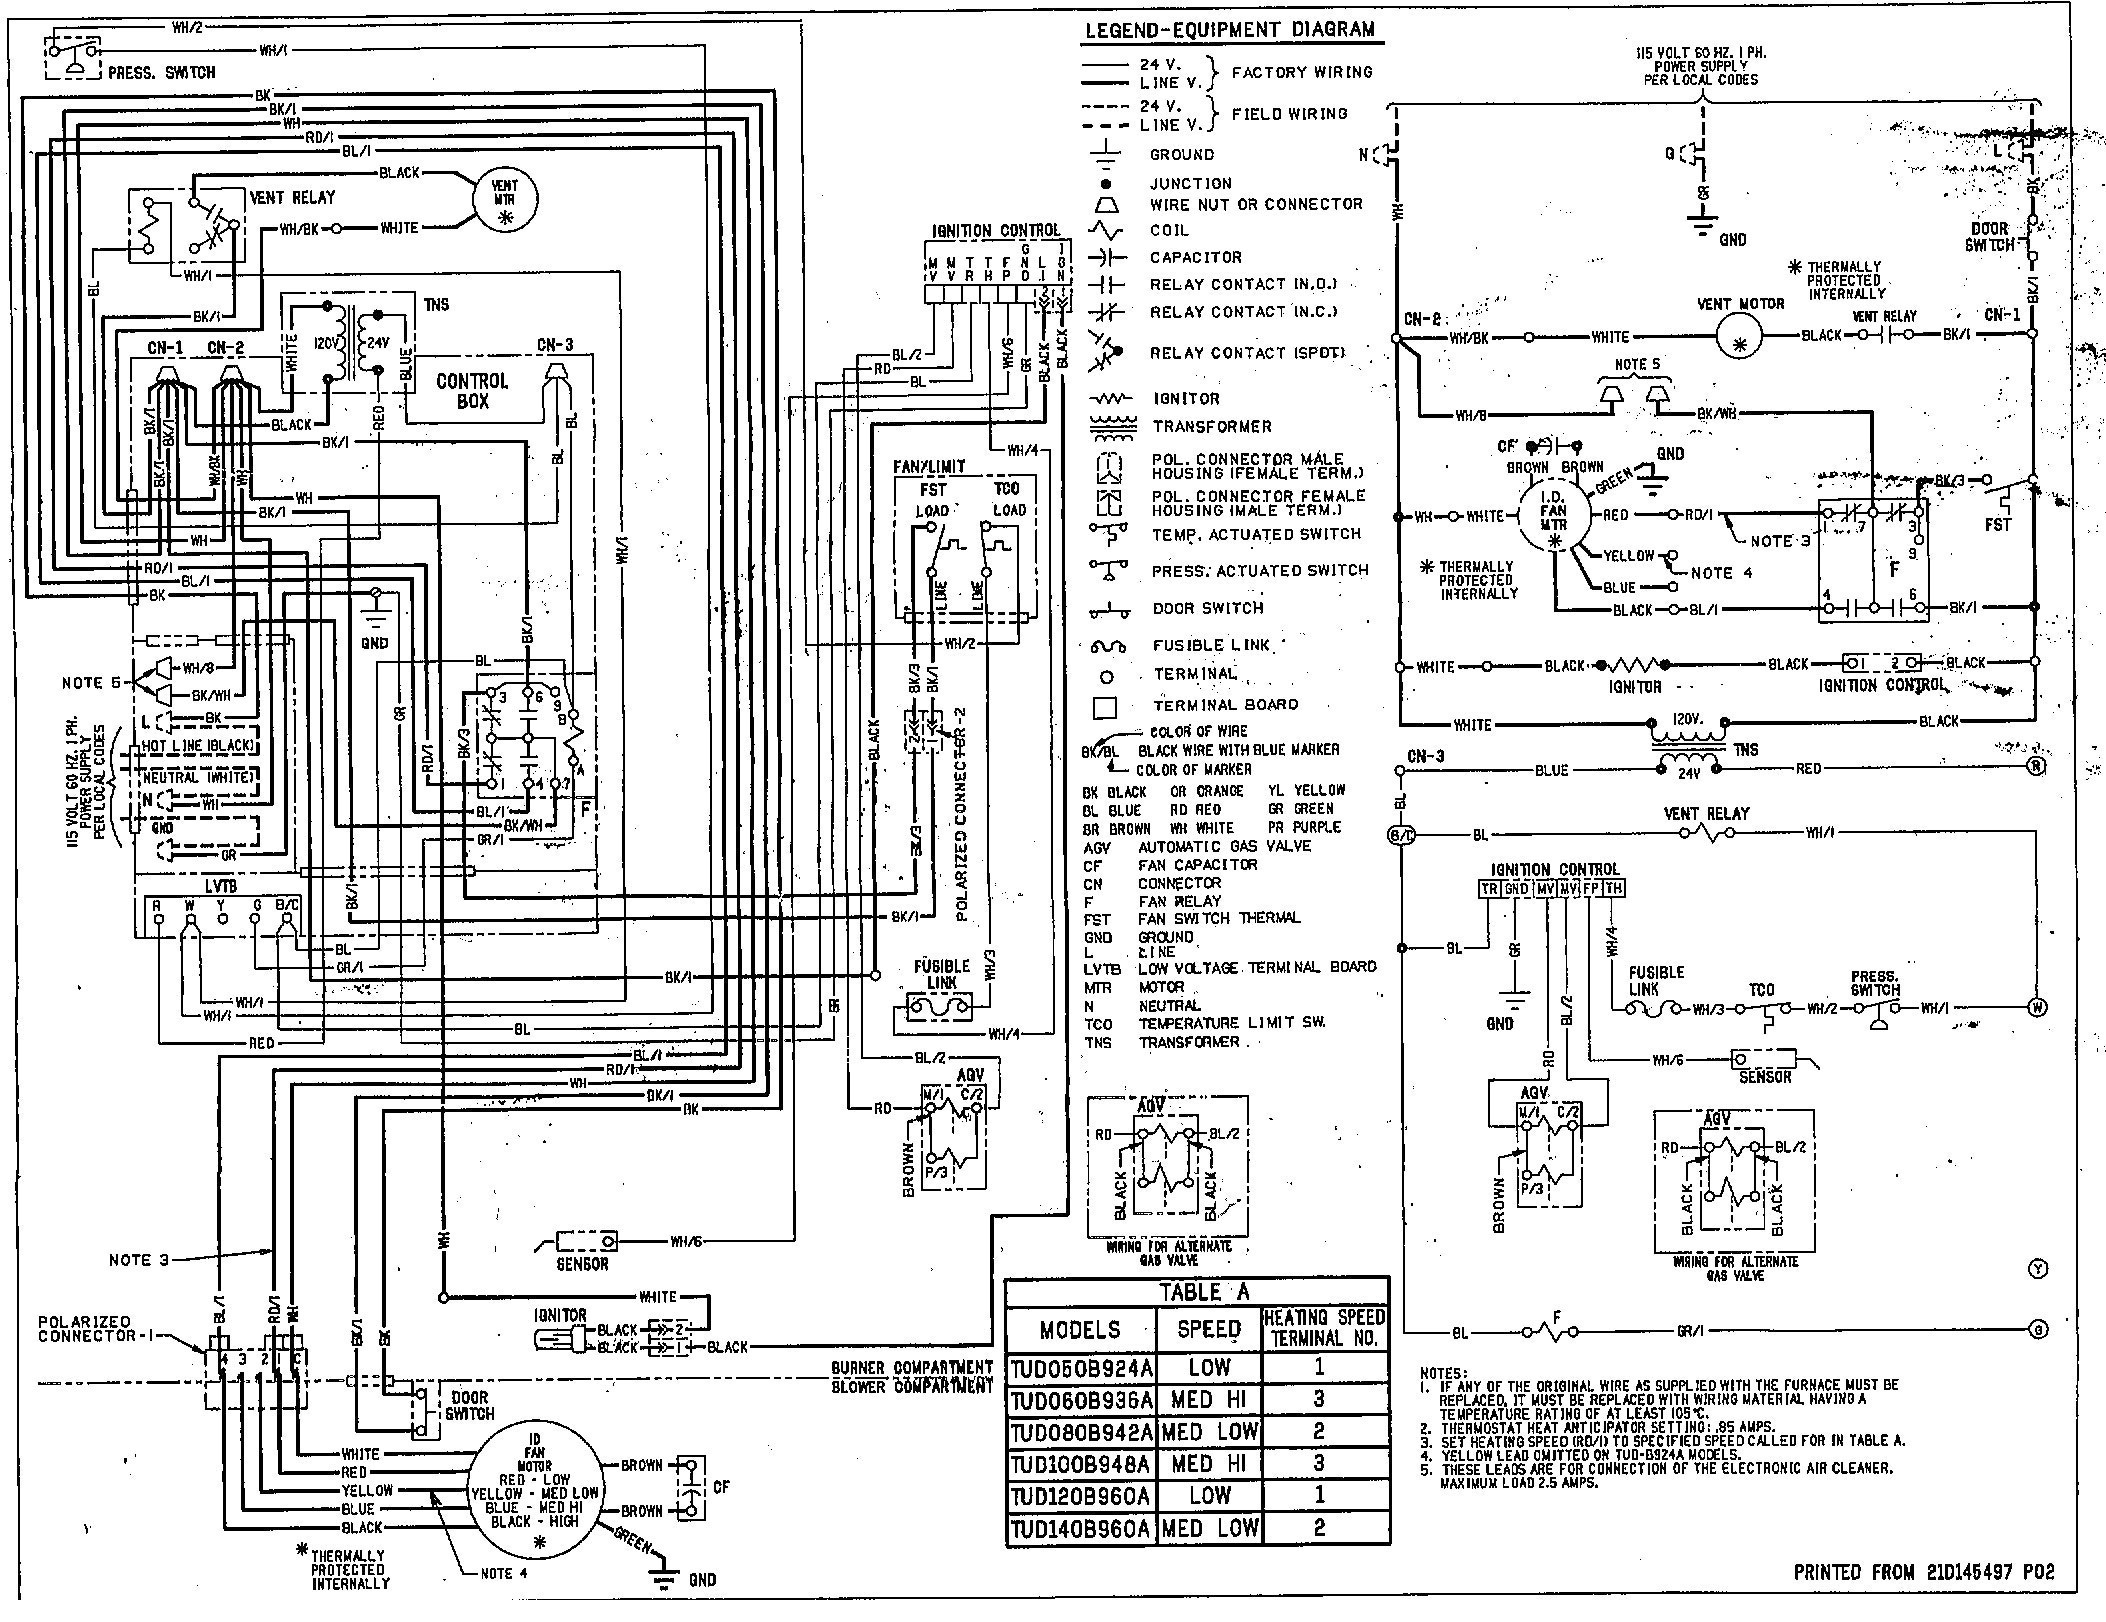 lennox furnace diagram